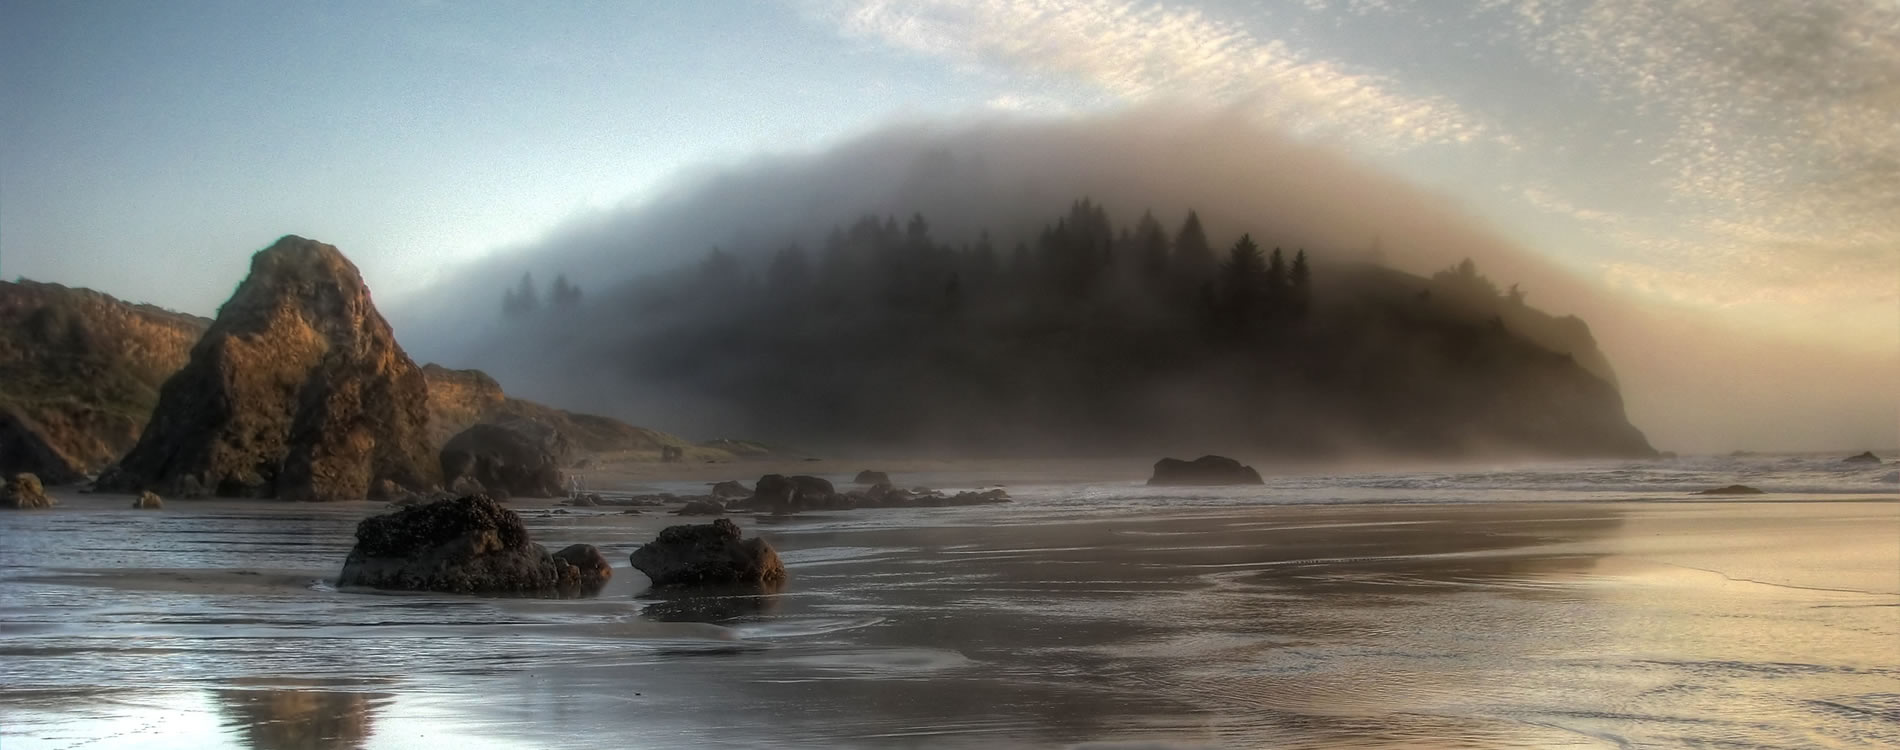 humbolt county beaches